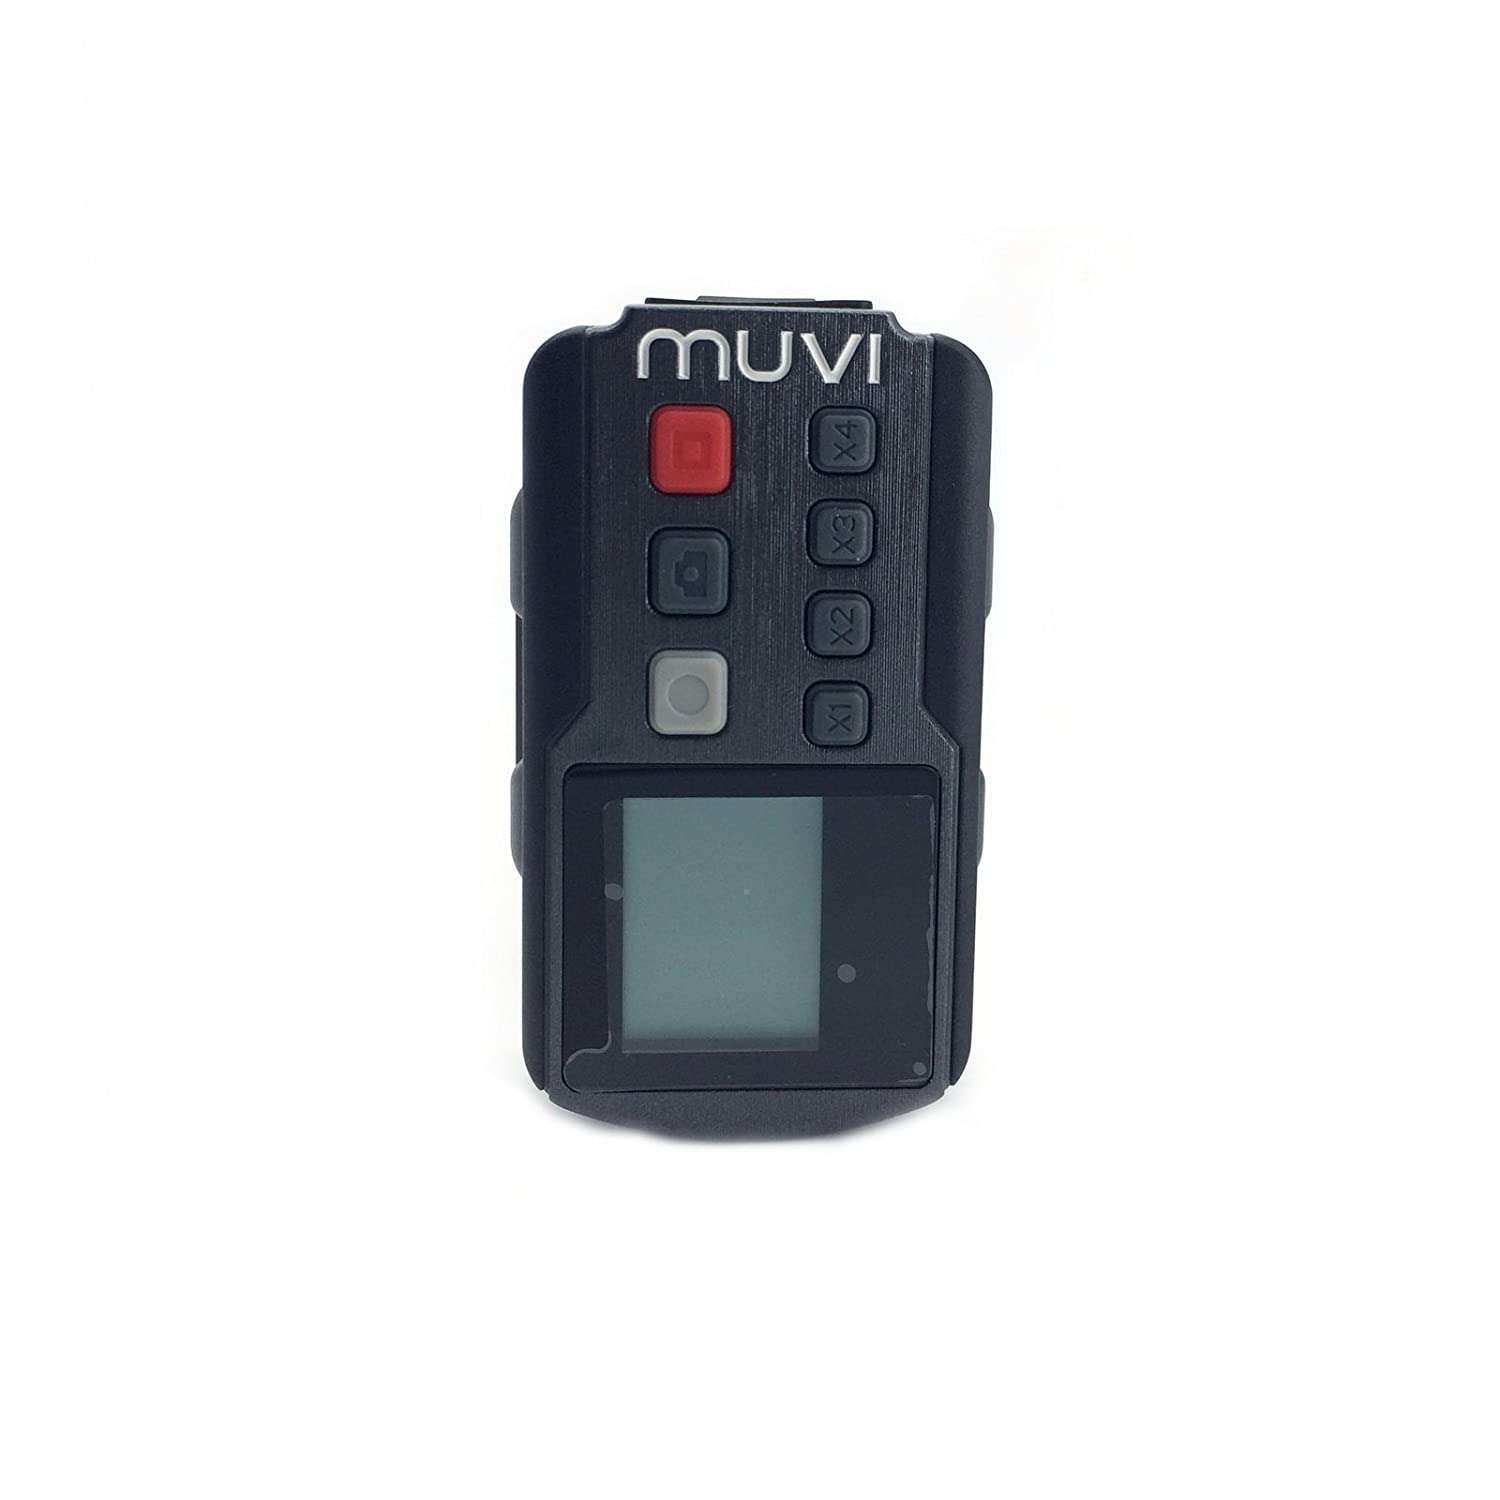 Veho VCC-A035-WPC Waterproof Case for MUVI K Series Video Camera, Black